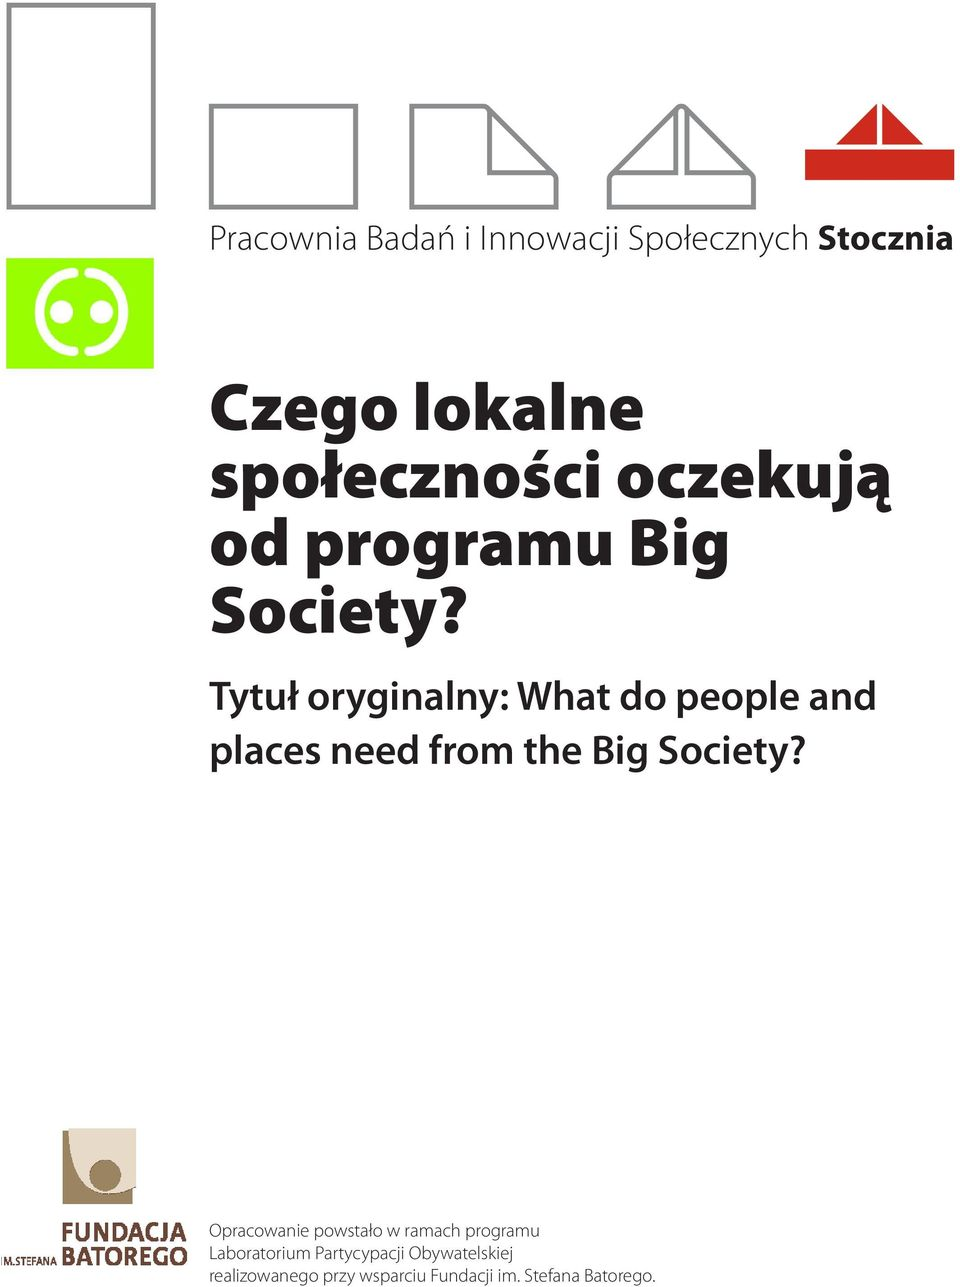 Tytuł oryginalny: What do people and places need from the Big Society?